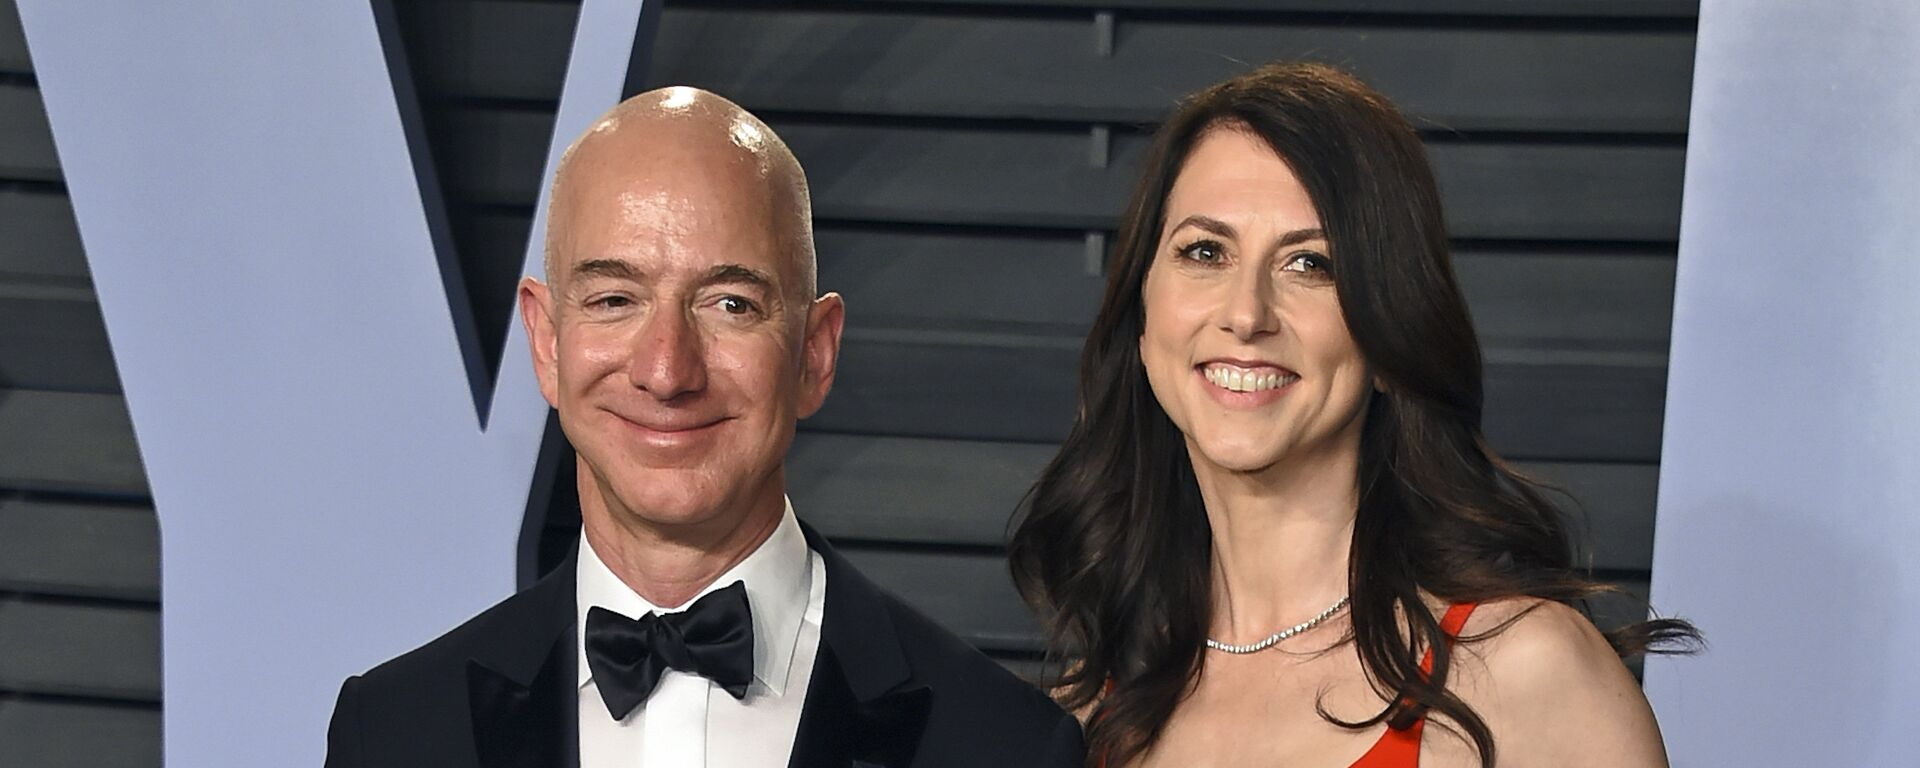 In this March 4, 2018 file photo, Jeff Bezos and wife MacKenzie Bezos arrive at the Vanity Fair Oscar Party in Beverly Hills, Calif. - Sputnik Italia, 1920, 16.12.2020